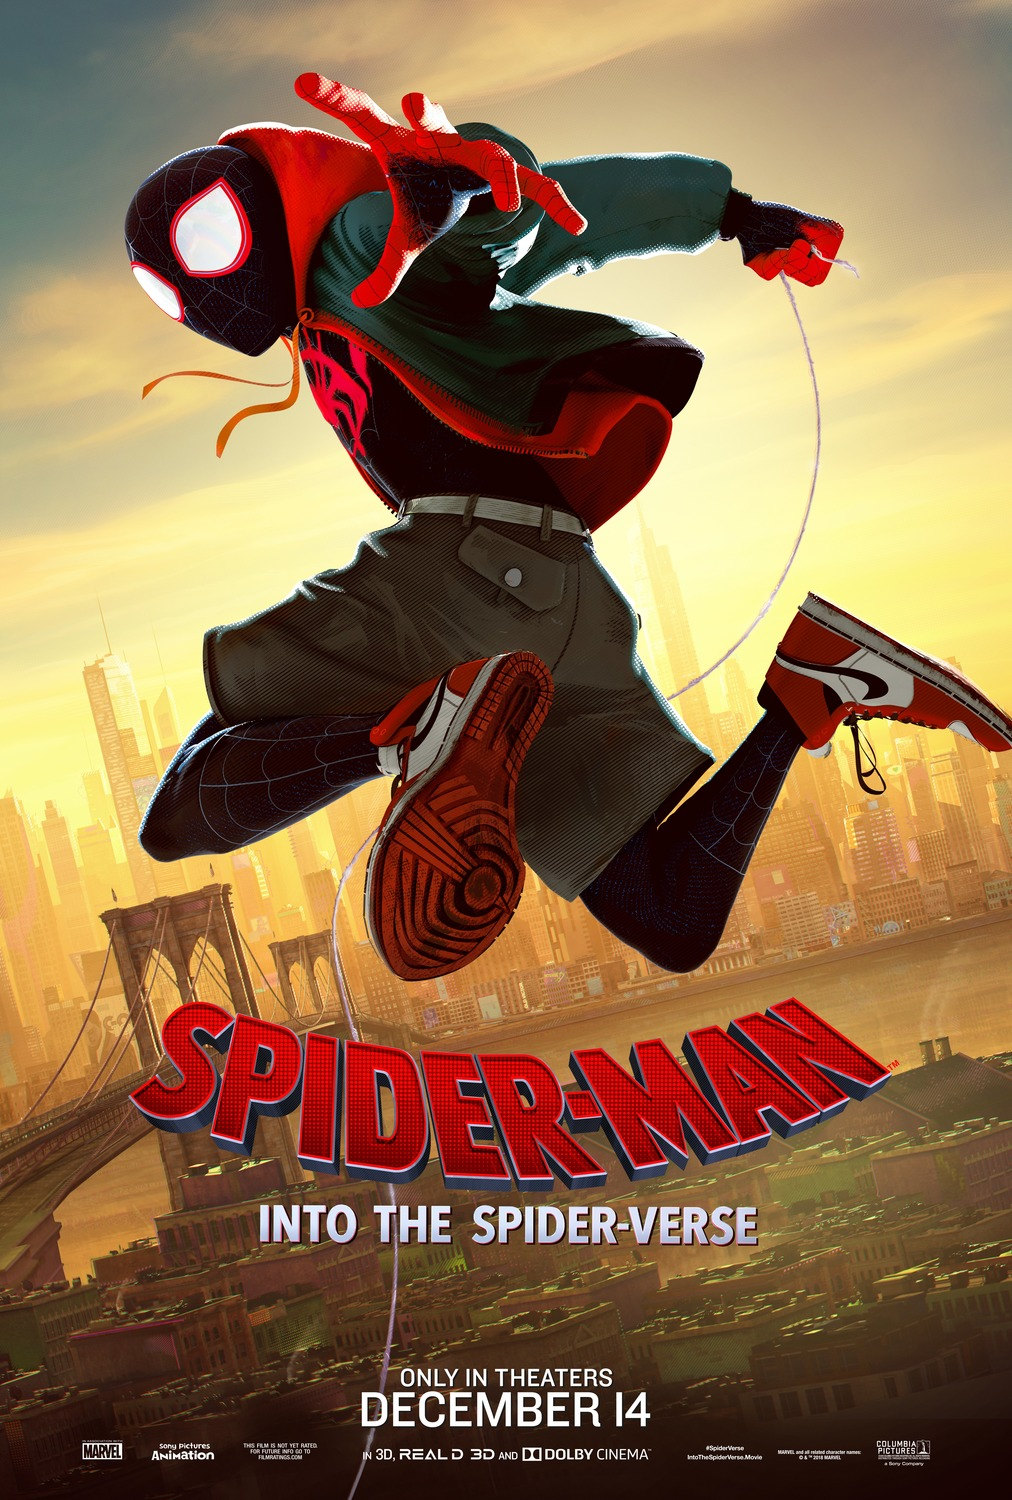 FRESH MOVIE :Spider-Man: Into the Spider-Verse (2018)